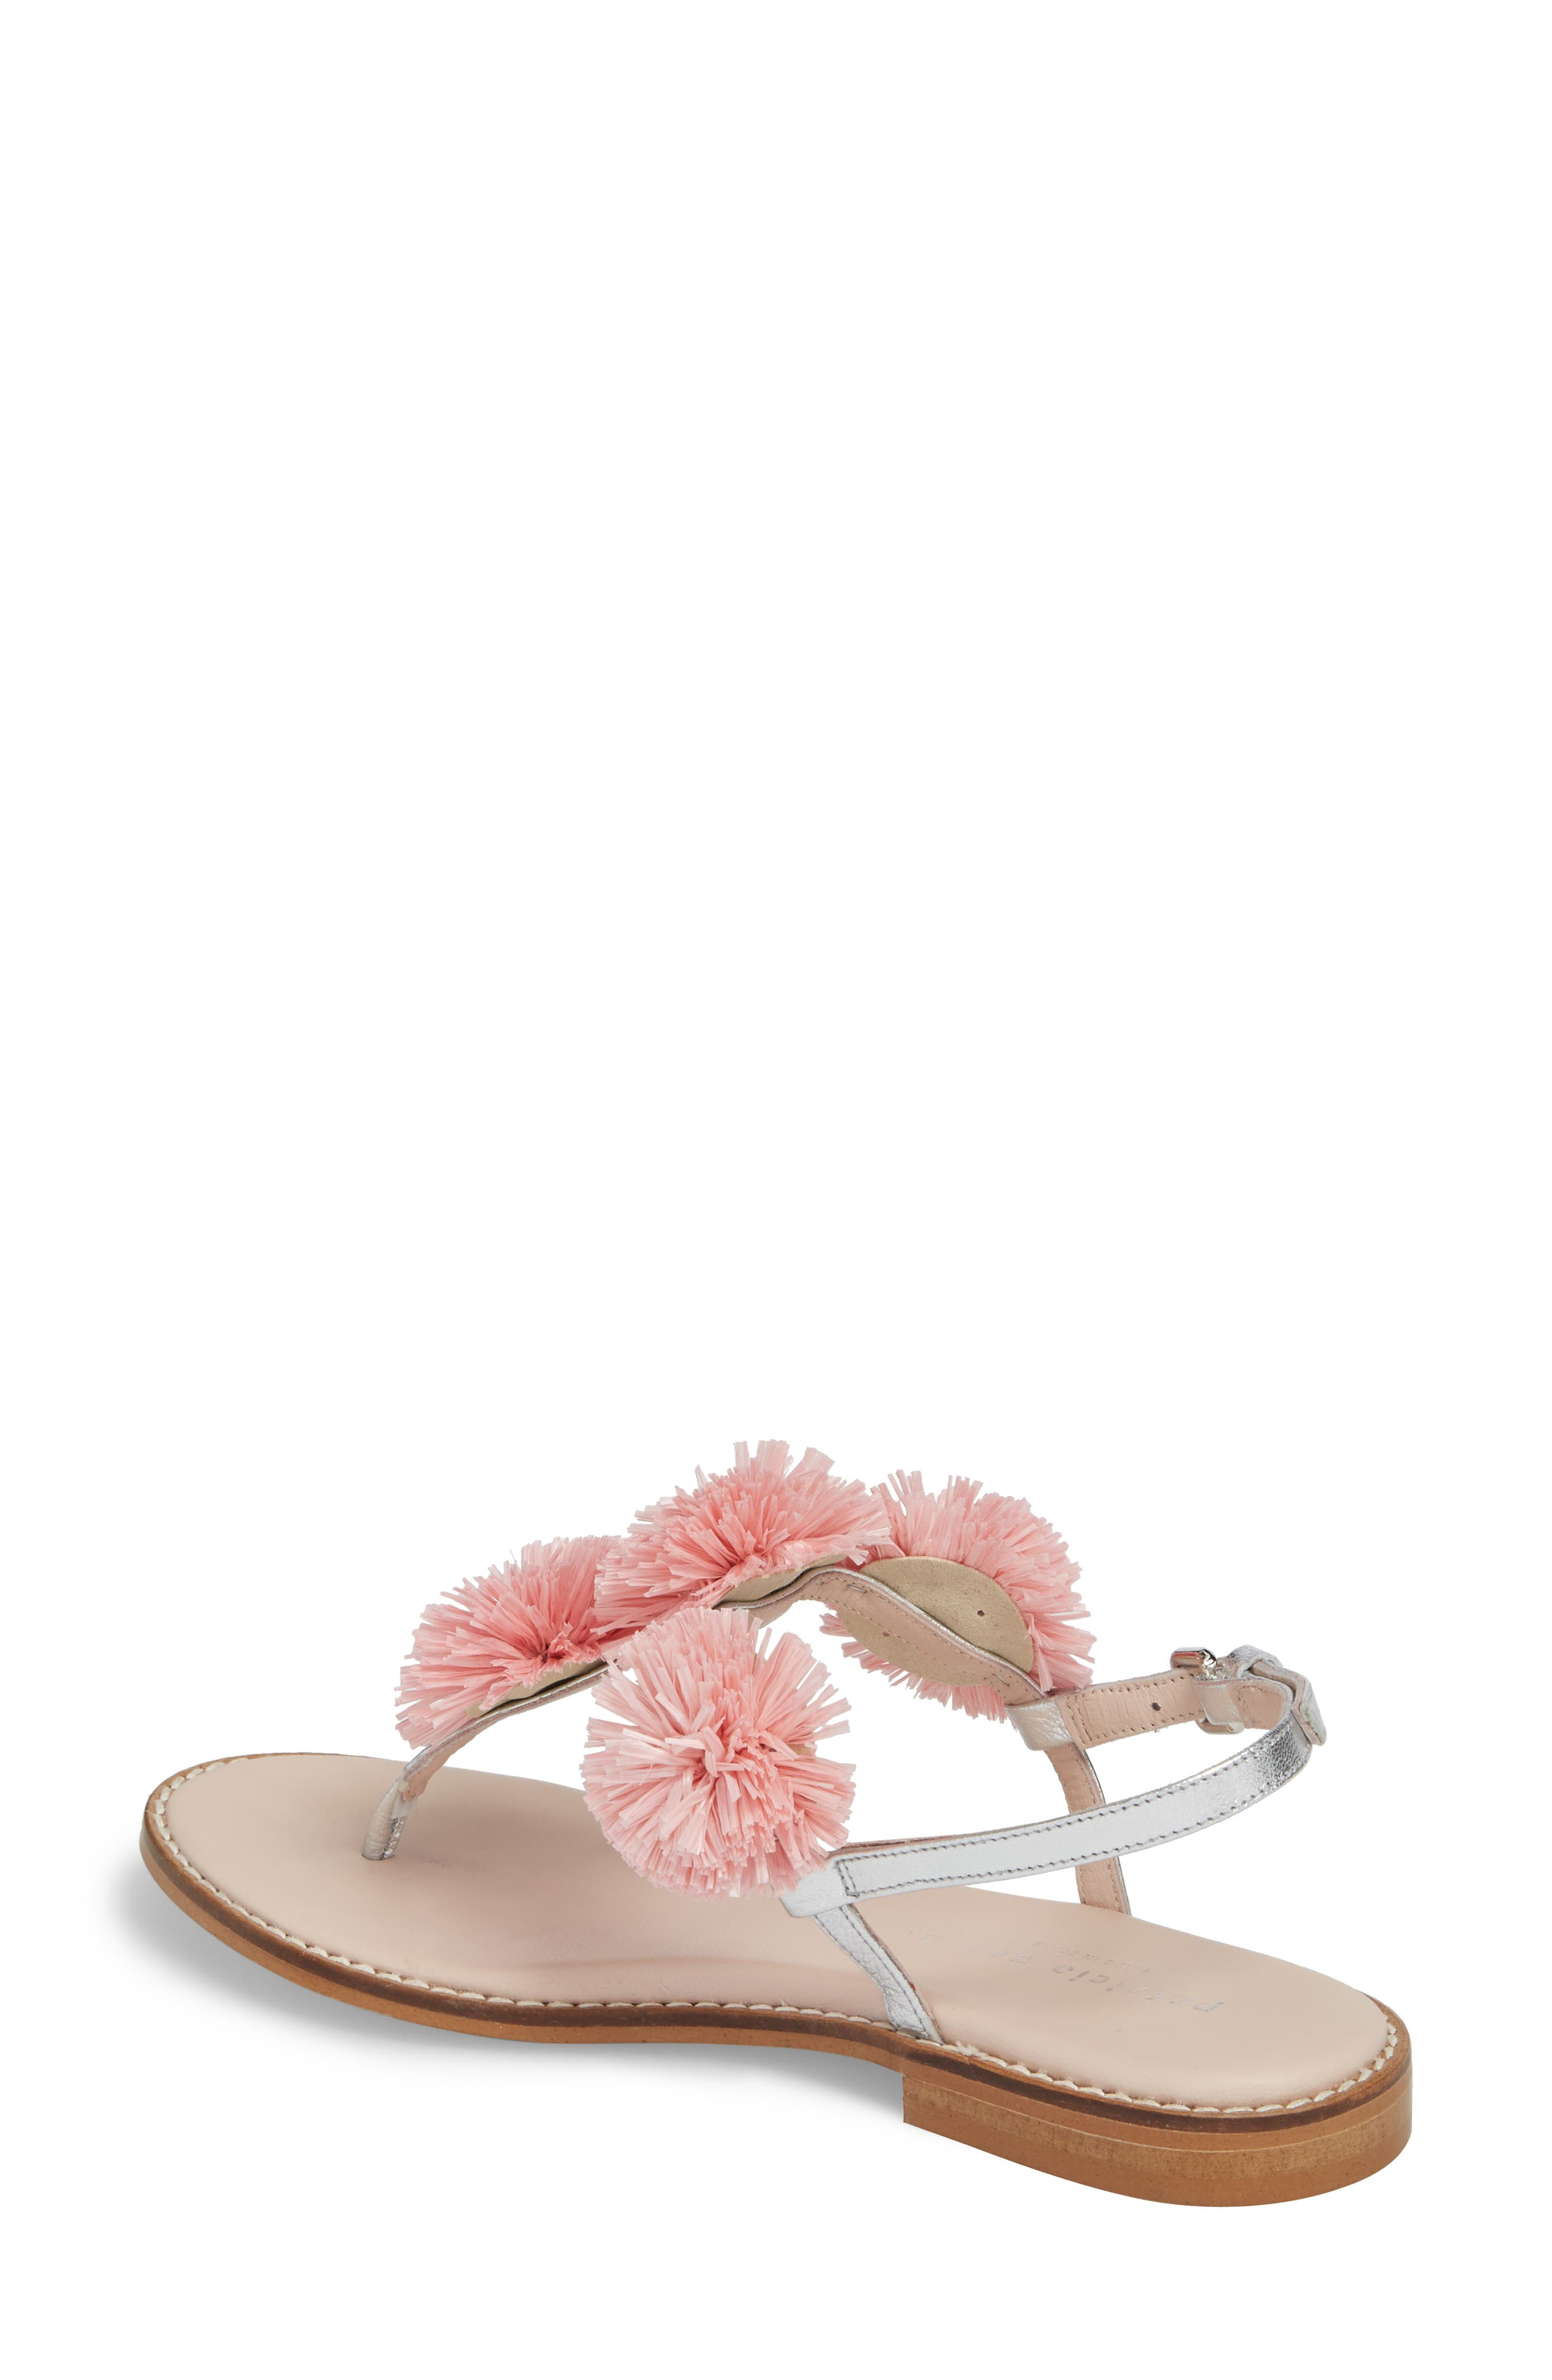 Pompom Thong Sandal,                             Alternate thumbnail 2, color,                             PINK LEATHER